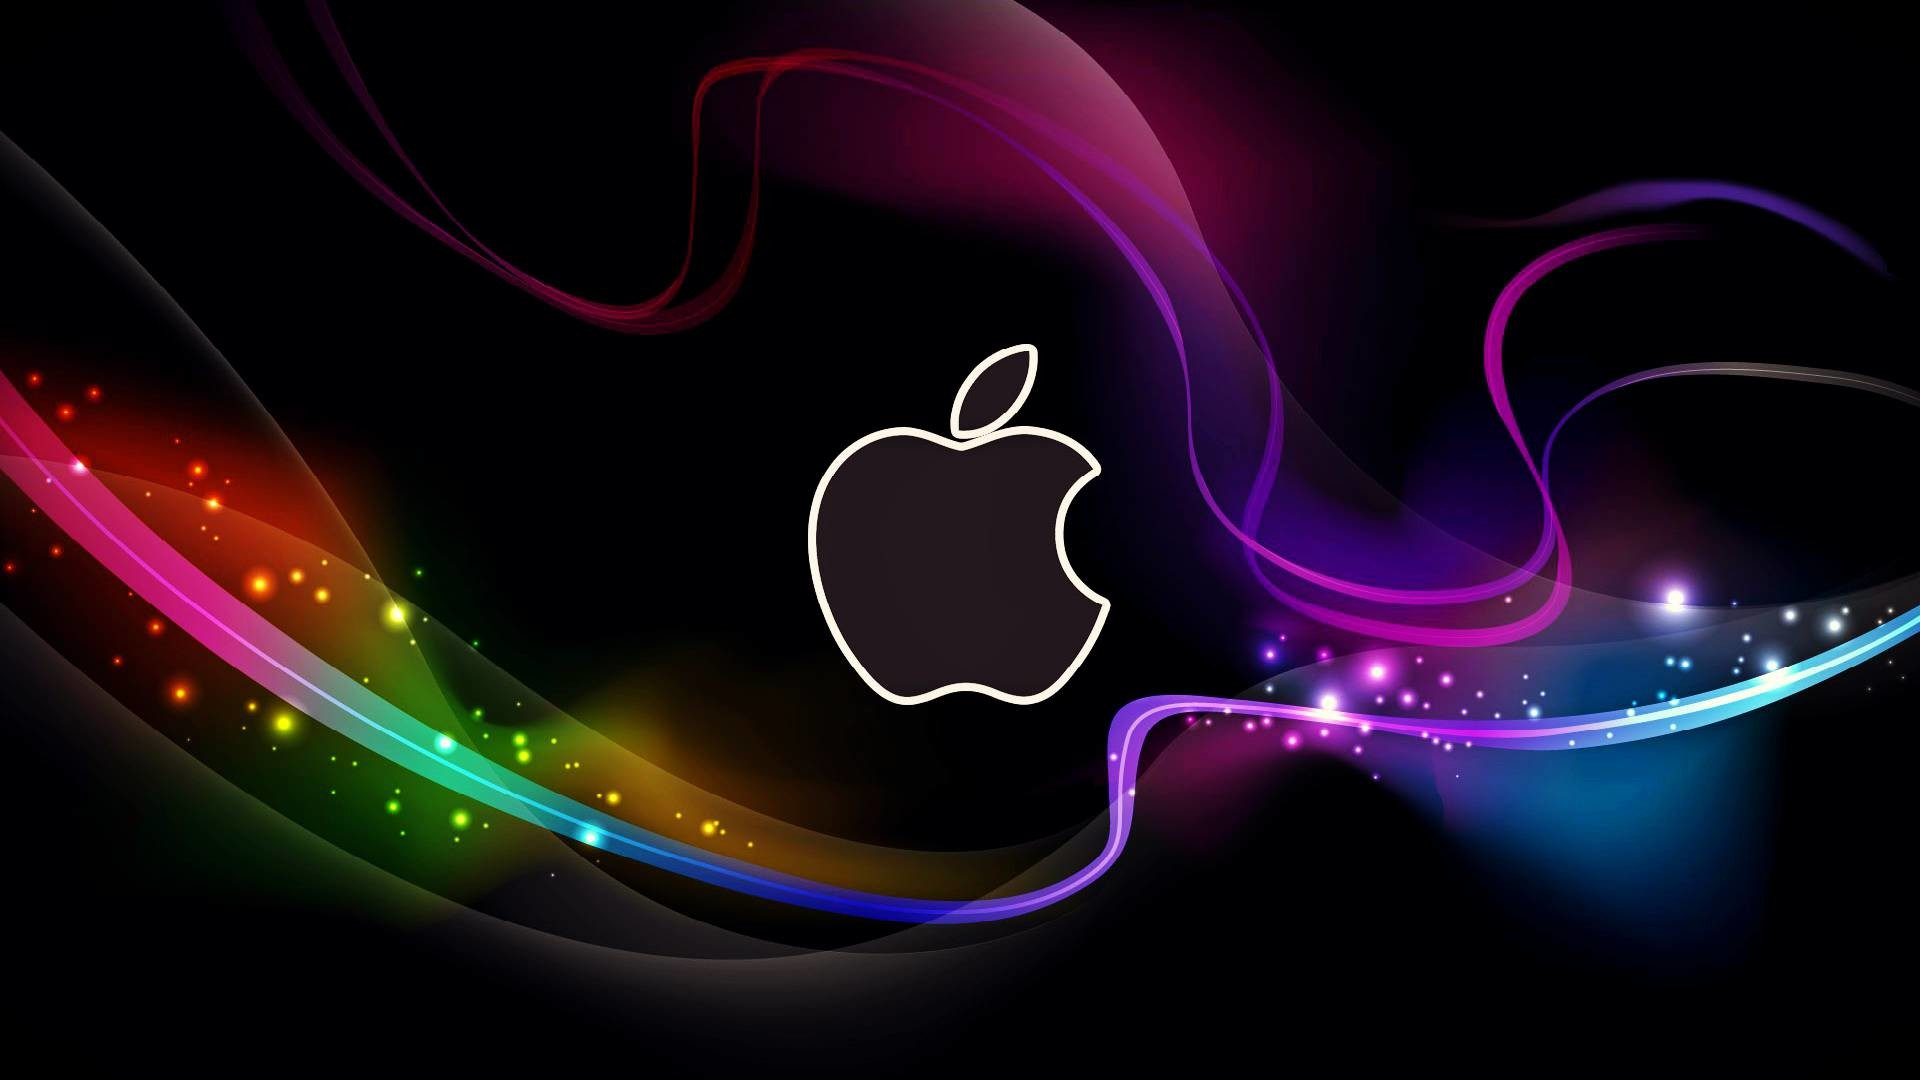 Cool Apple Logo Wallpaper Wallpapertag